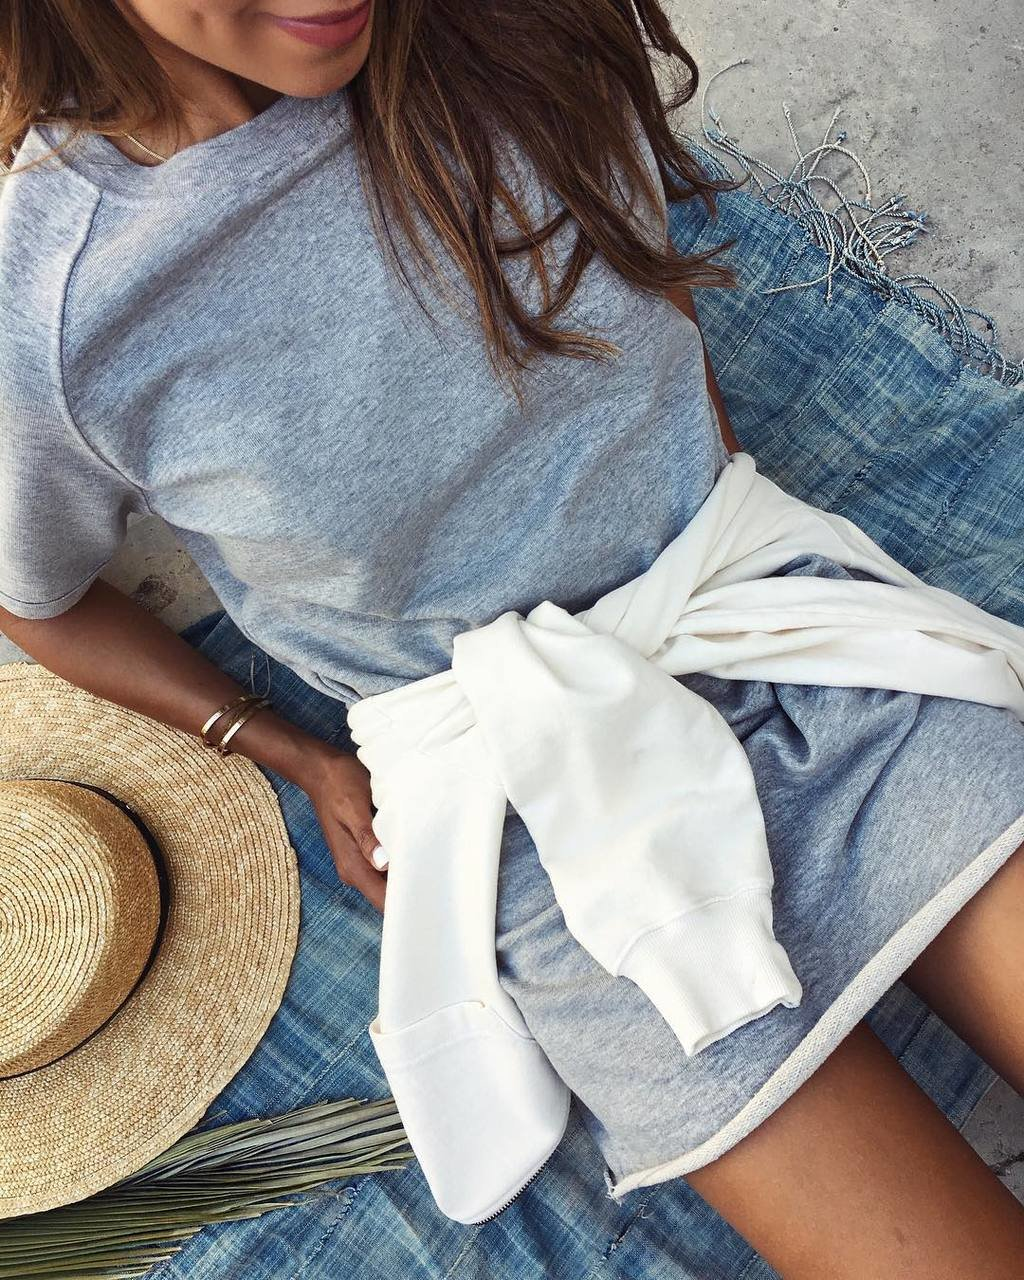 When good basics are comfy af. ☁️ @shop_sincerelyjules / now on sale! Shopsincerelyjules.com image